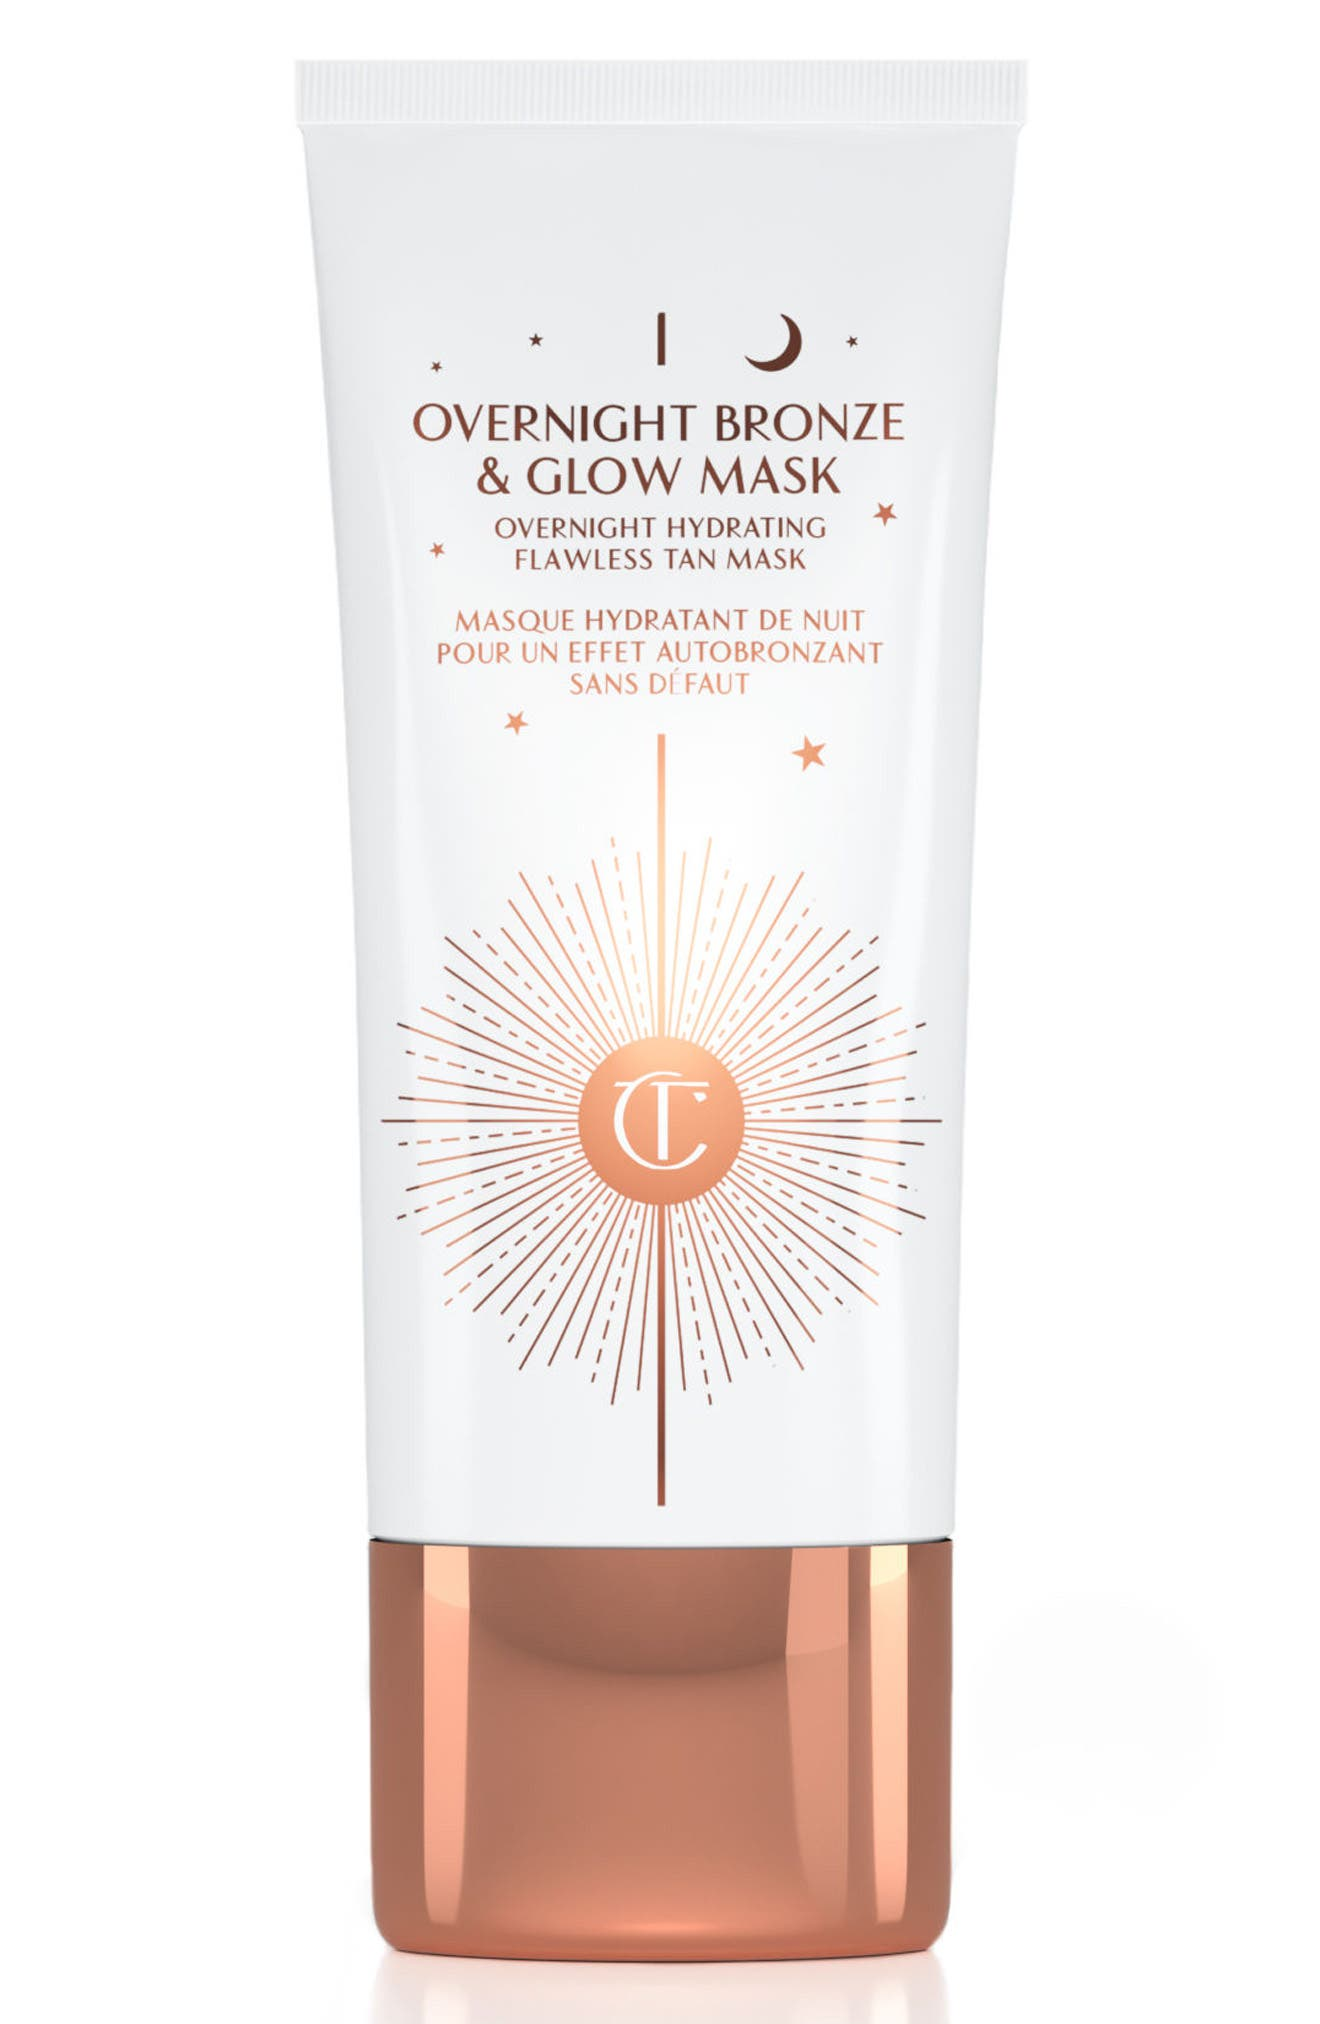 Alternate Image 1 Selected - Charlotte Tilbury Overnight Bronze & Glow Mask